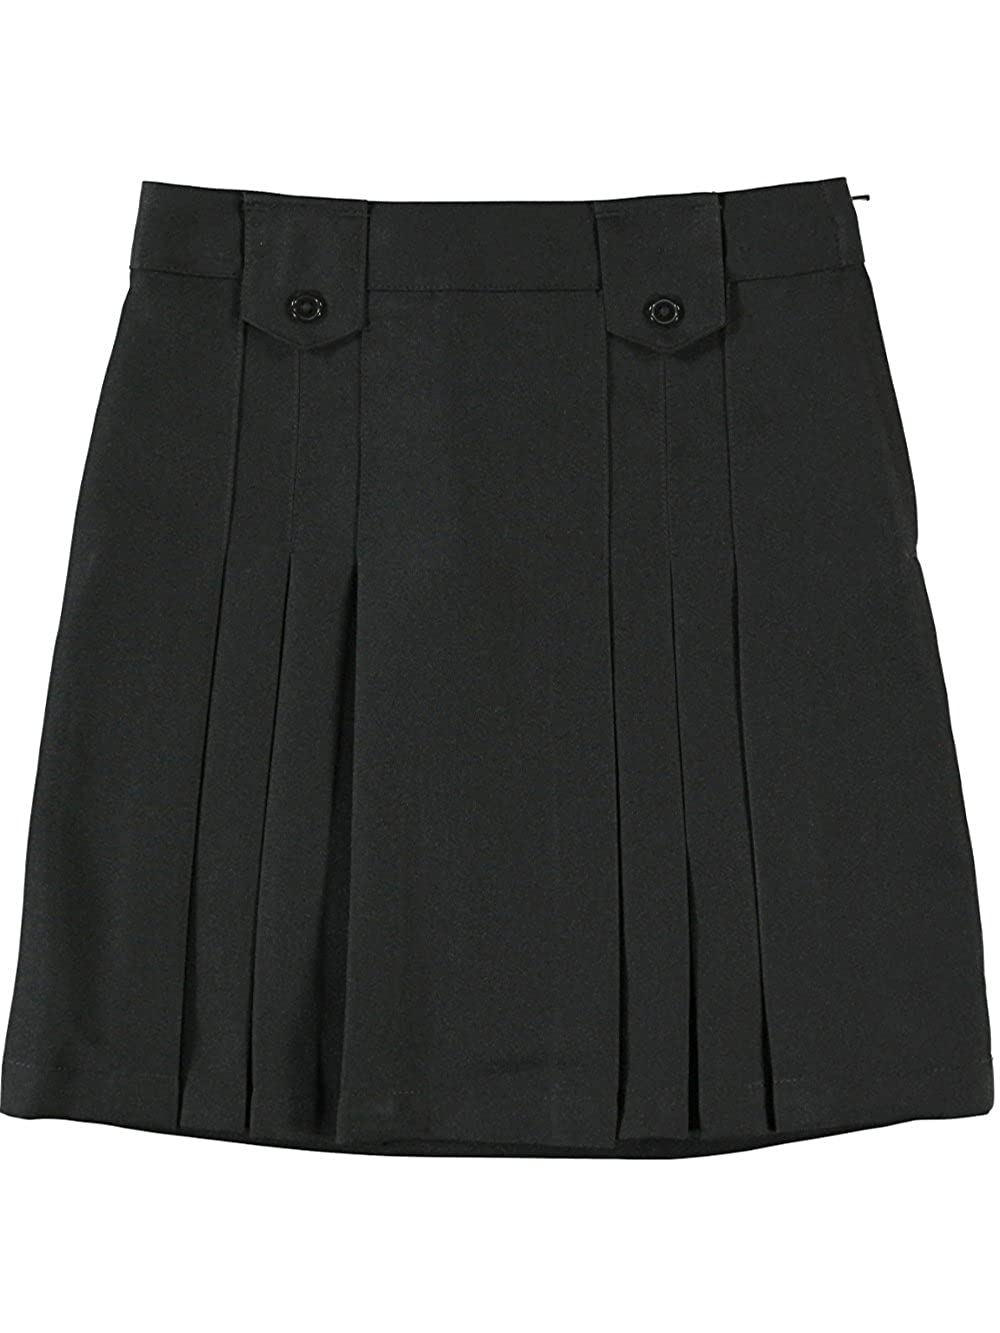 French Toast Big Girls' Pleat and Tab Skirt - black, 16